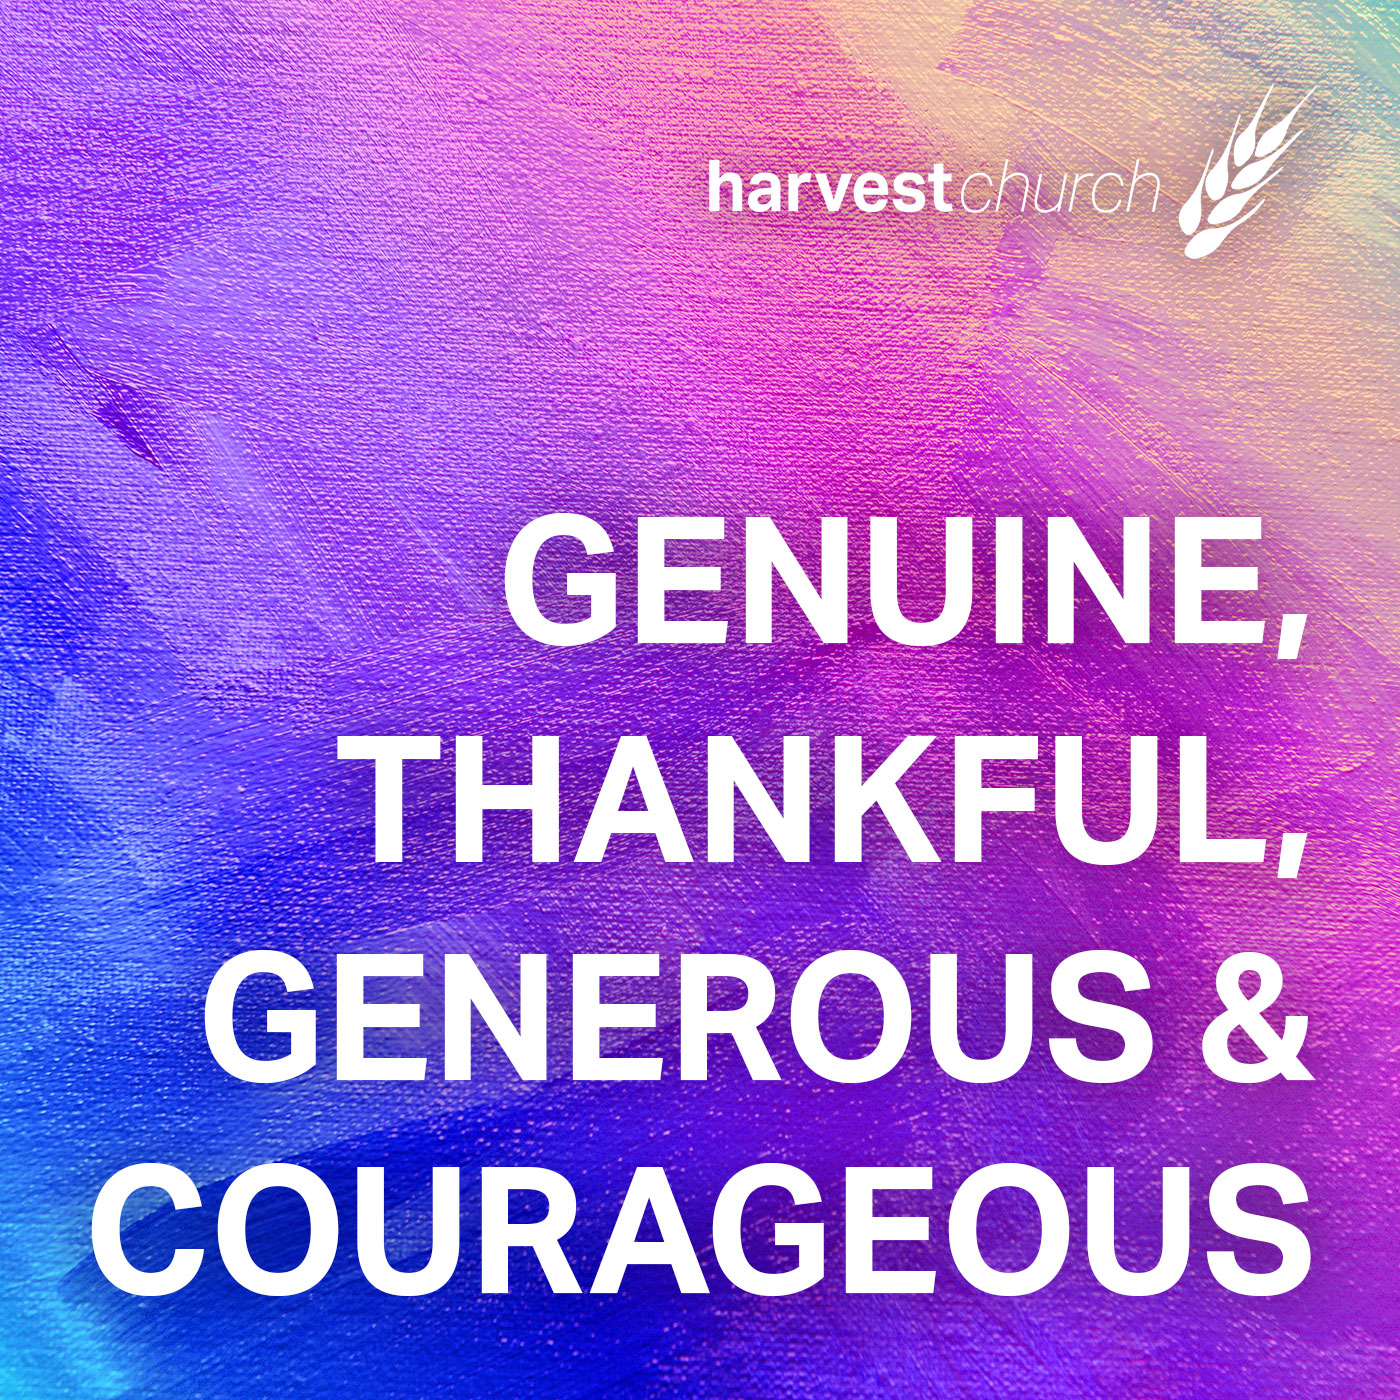 Genuine, Thankful, Generous & Courageous